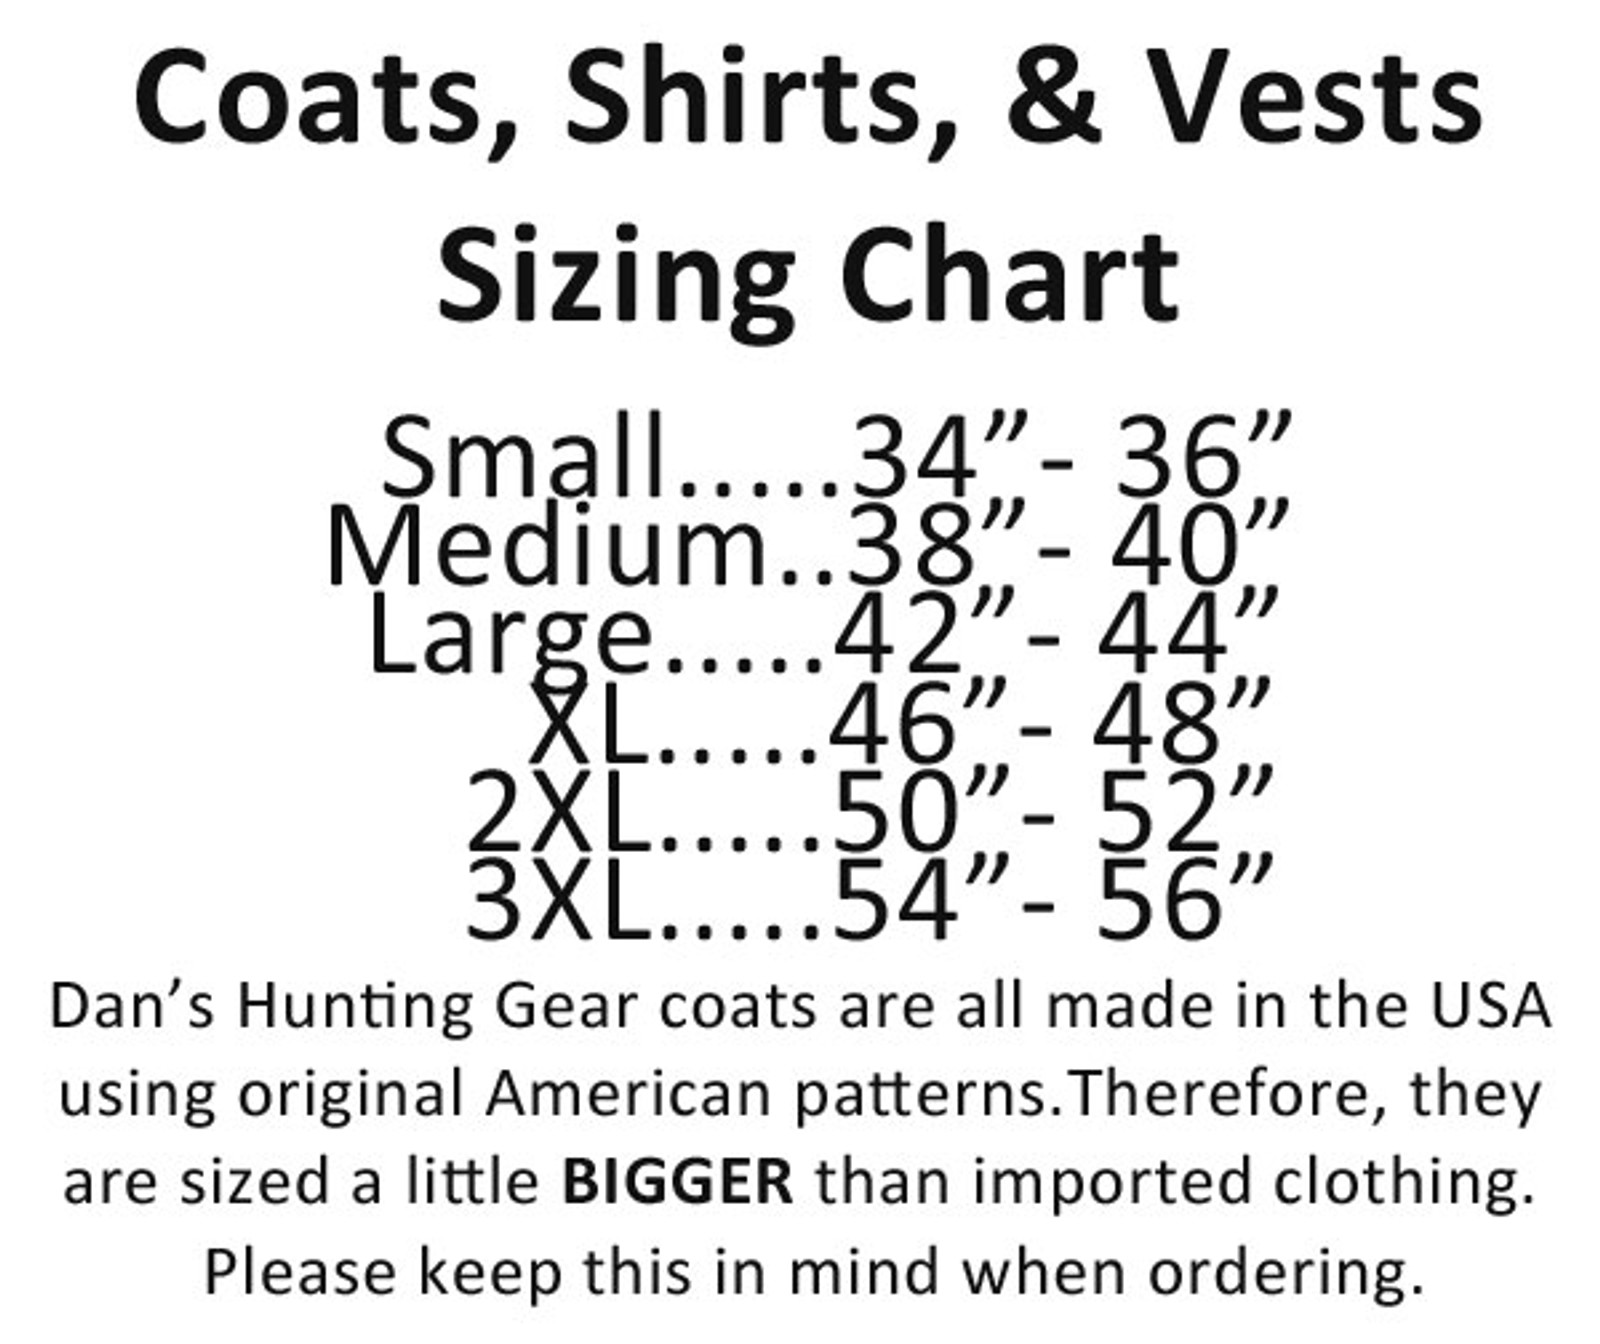 Sizing Chart for Brown Briarproof Shirt by Dan's Hunting Gear® | Briarproof Super Store